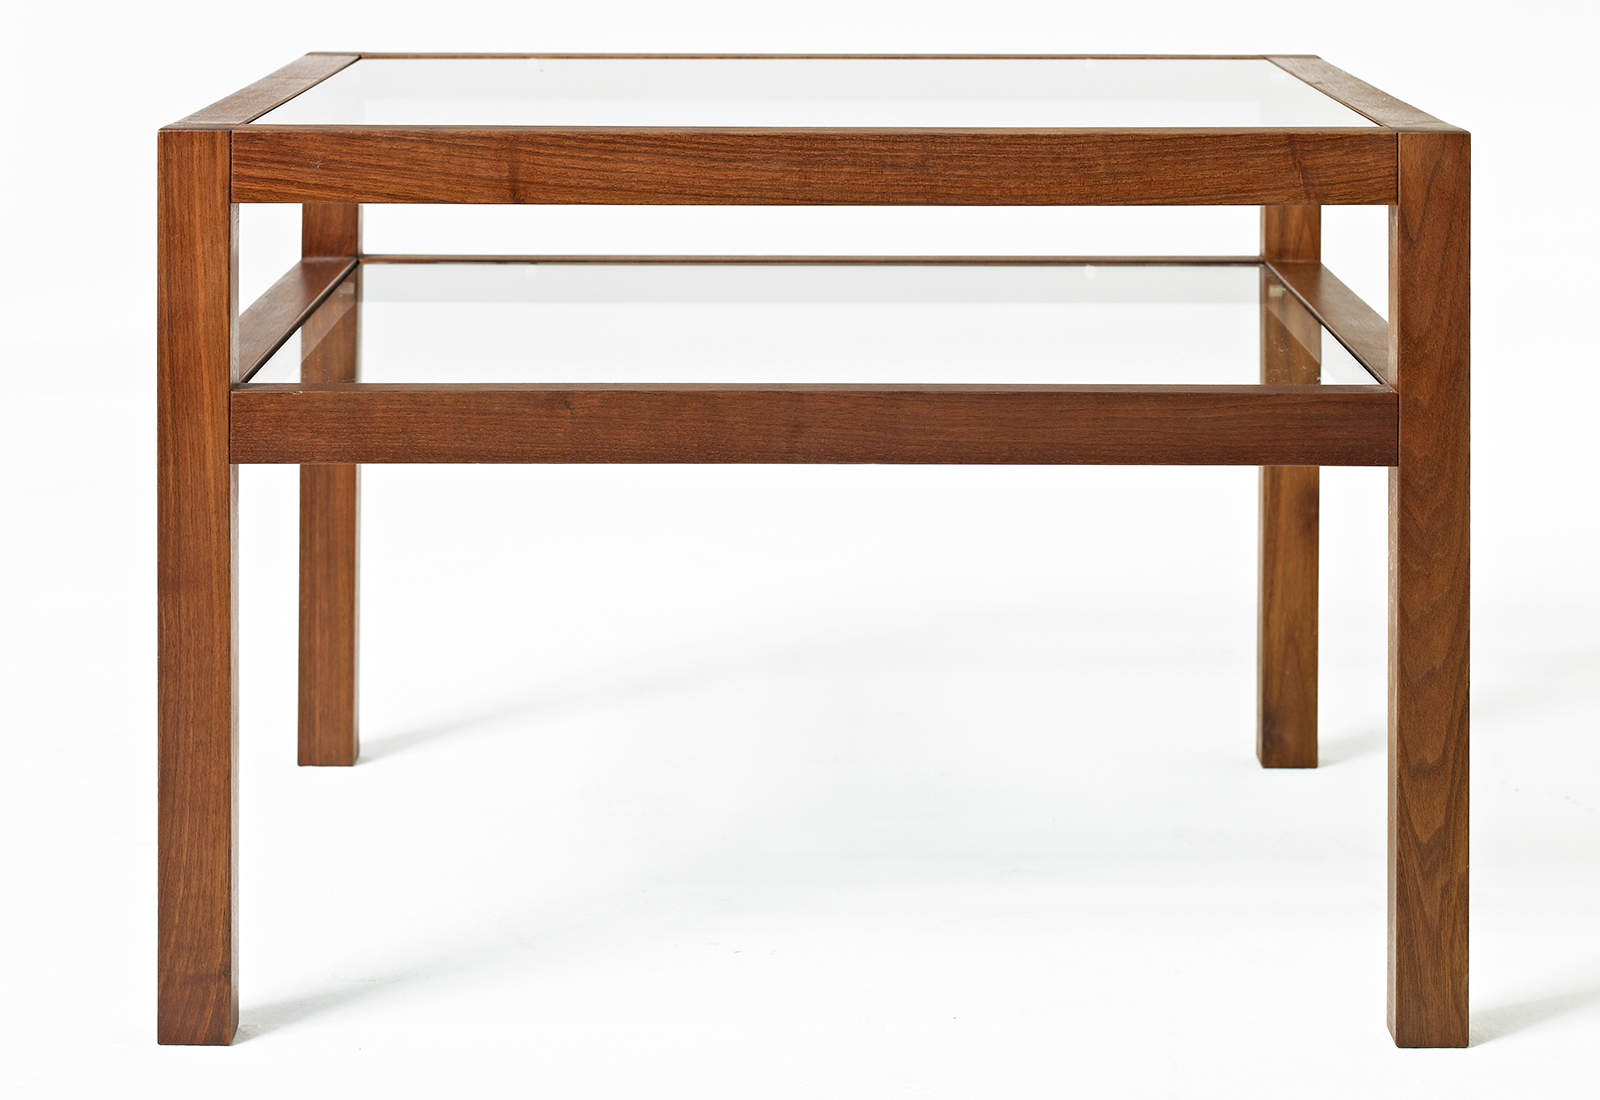 Coffee Table Side Table Latte By Sixay Furniture Solid Wood Design Furniture Sixay Com Sixay Com